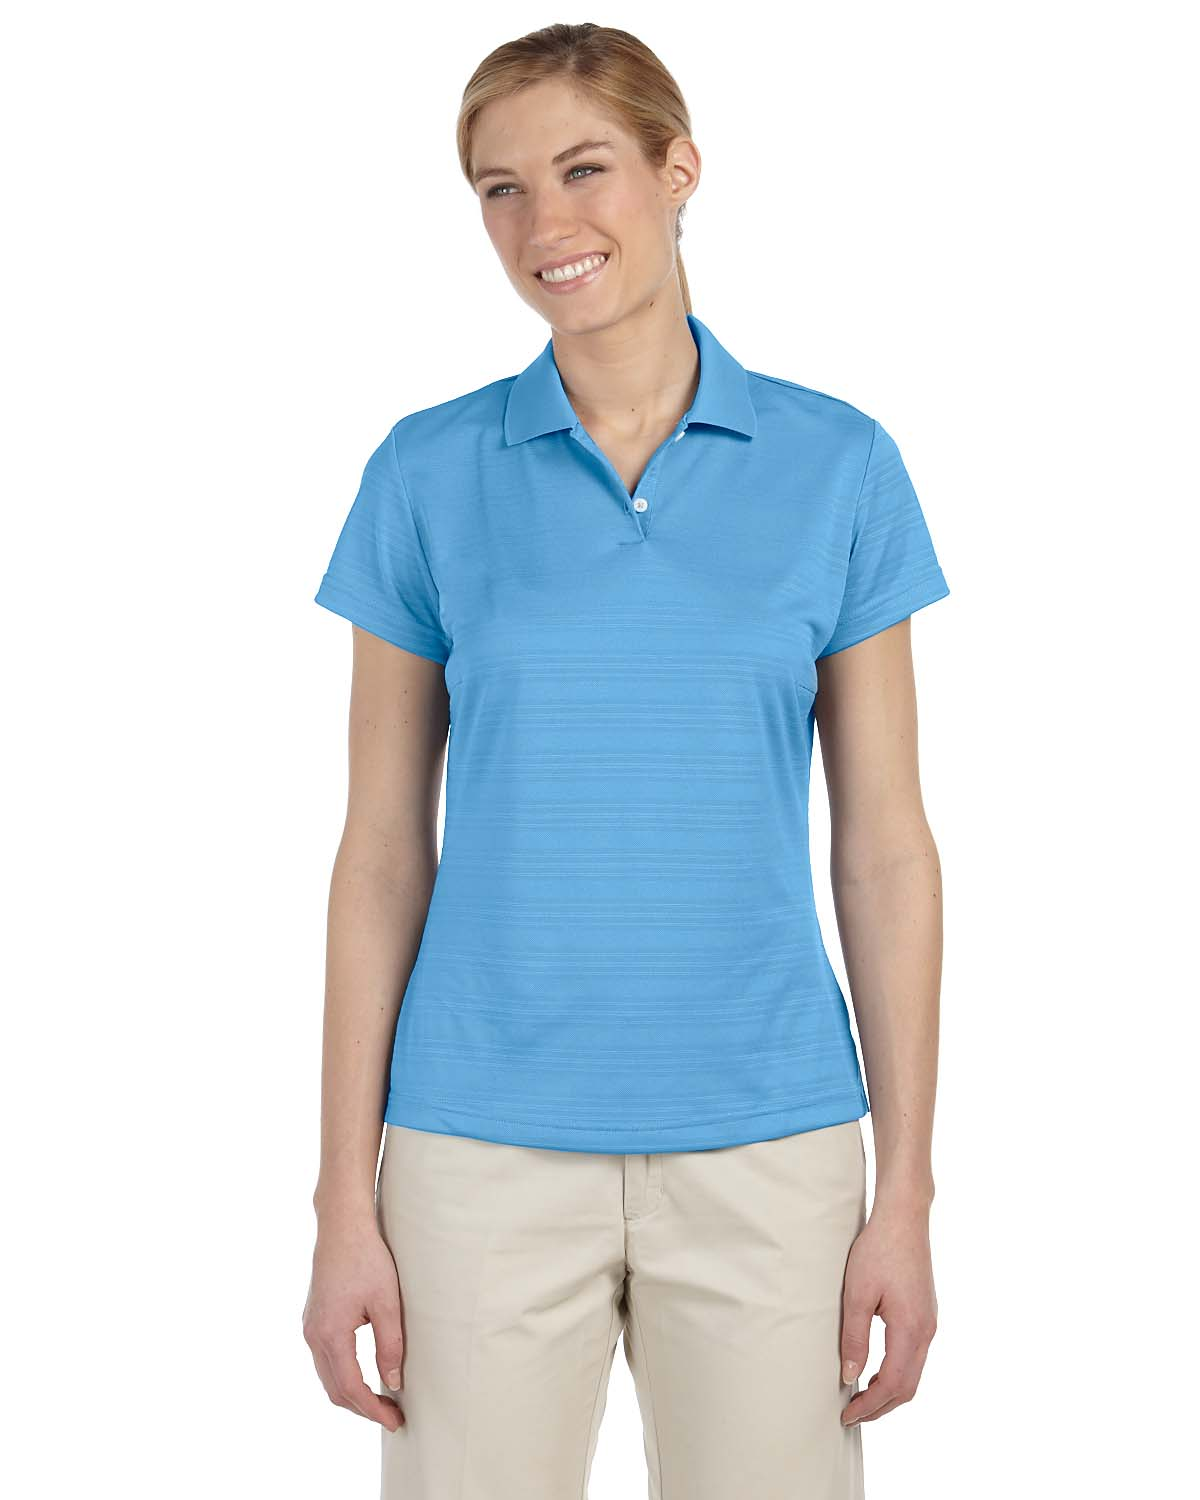 Adidas golf ladies 39 climalite textured short sleeve polo s for Golf polo shirts for women